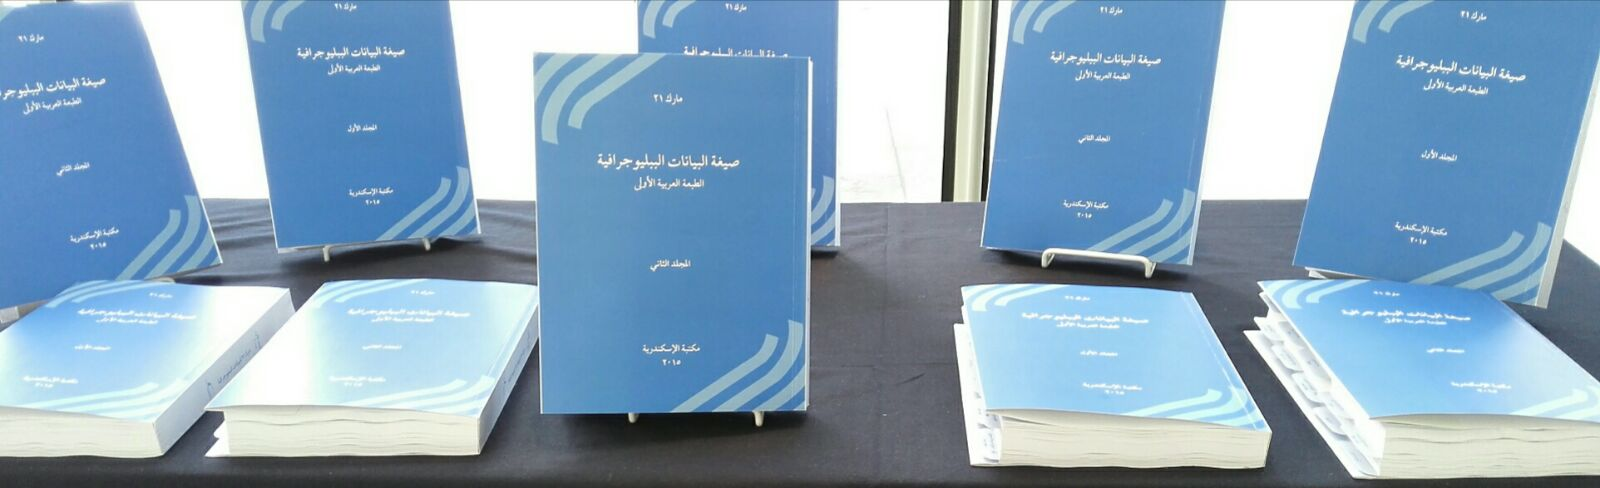 The Ba Launches The Arabic Edition Of Marc 21 Format For